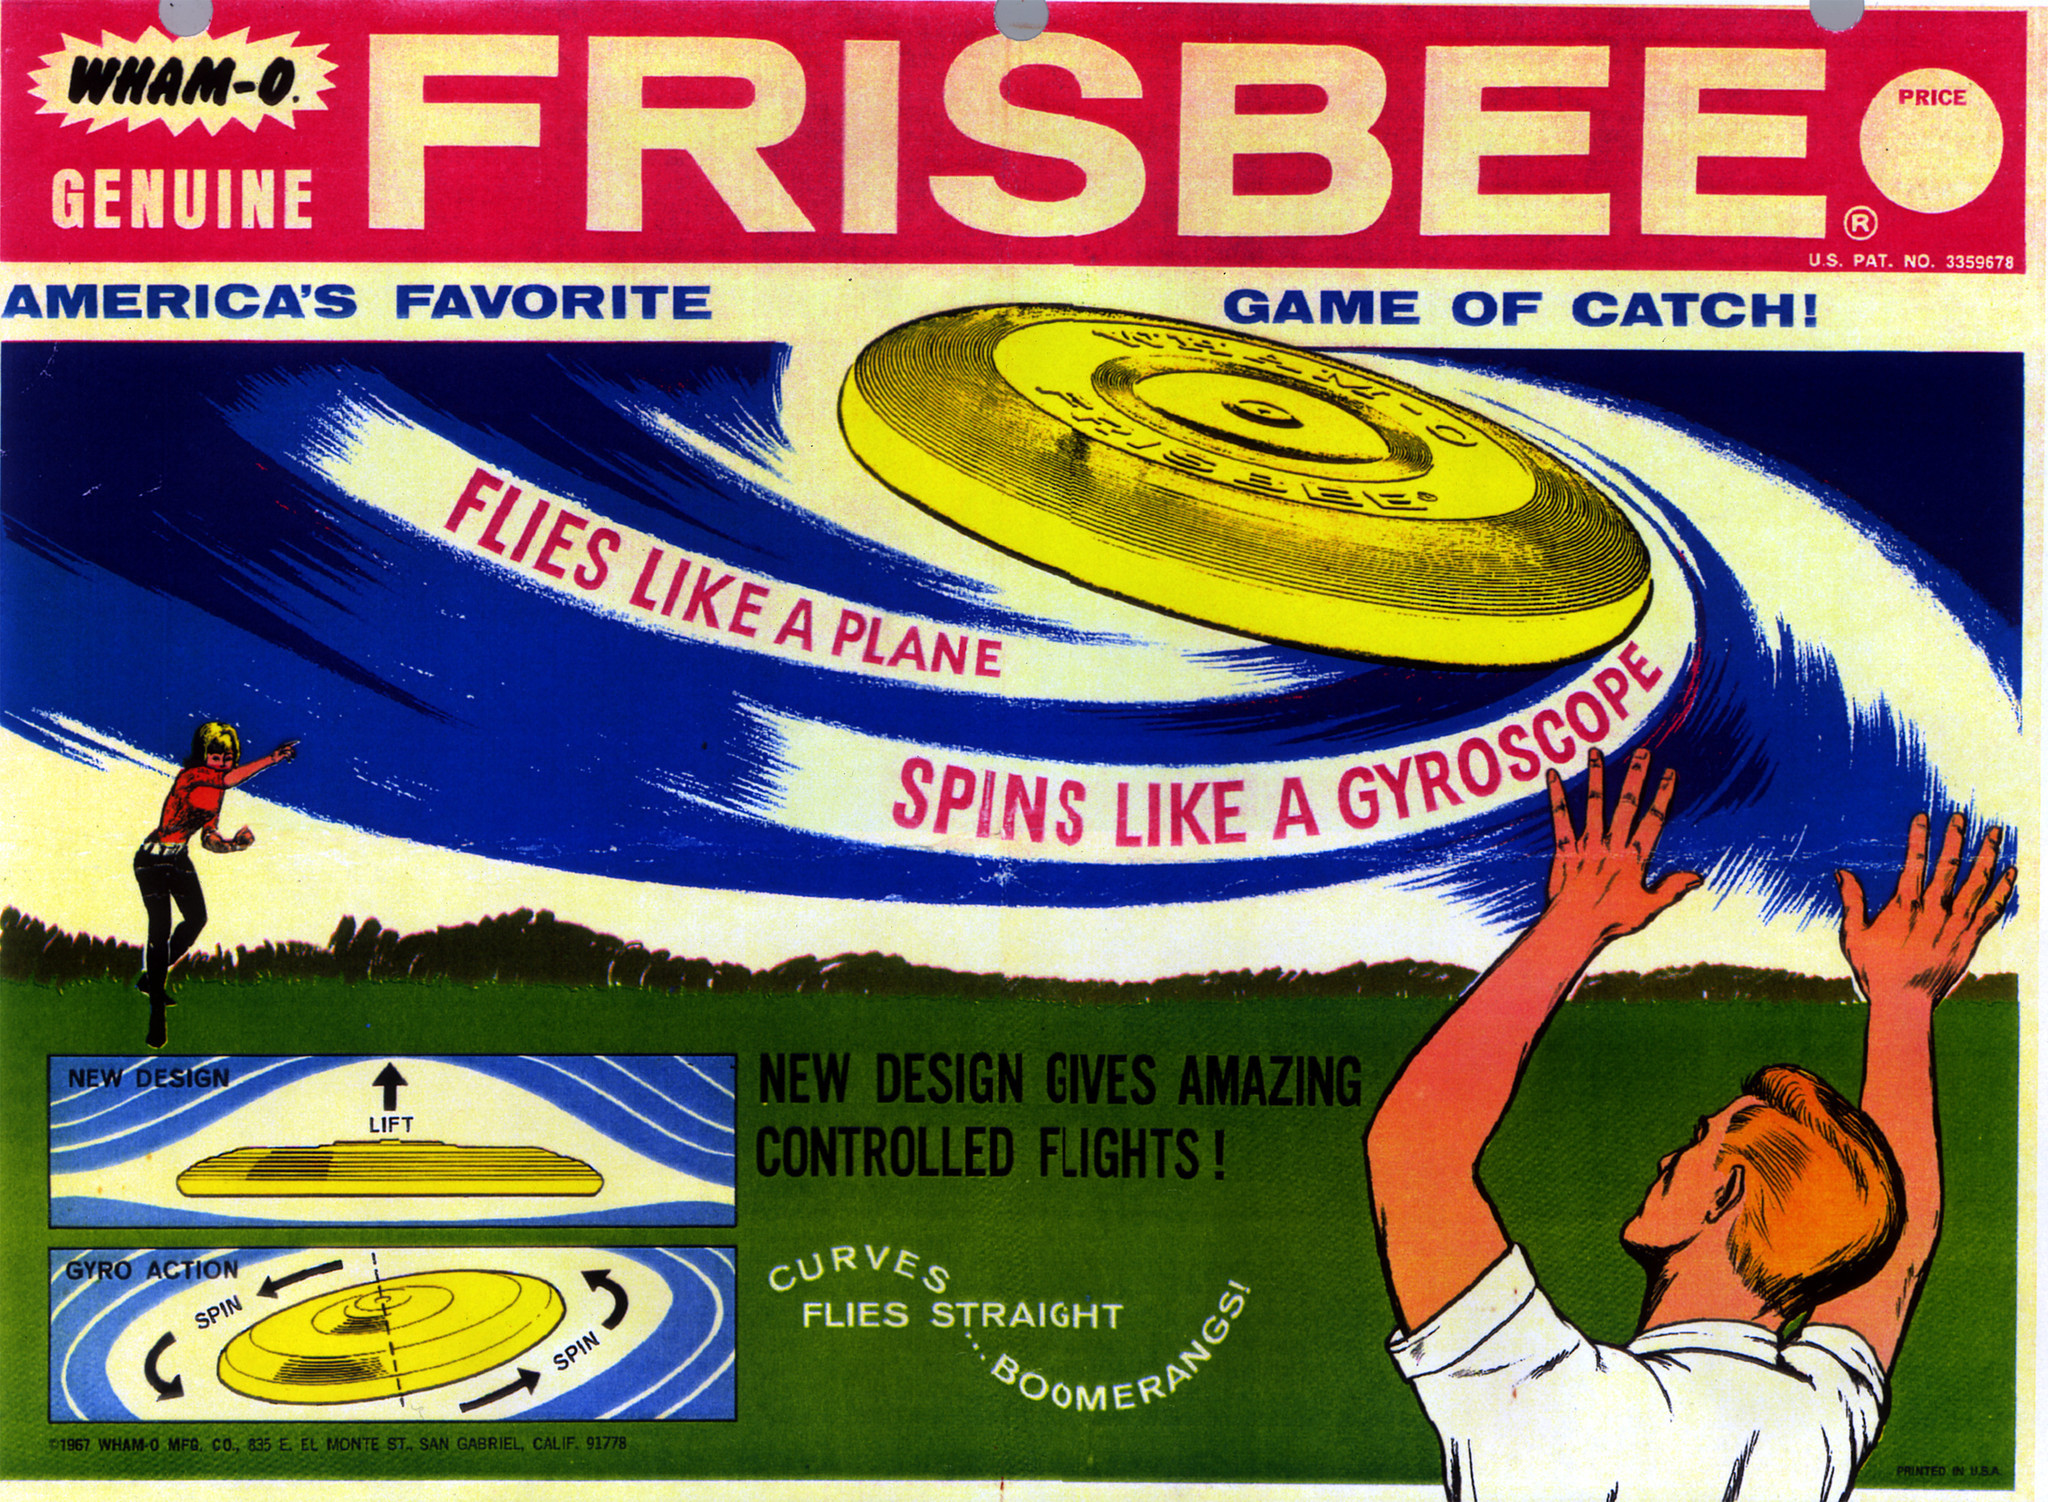 A historical advertisement for Wham–O's Frisbee.